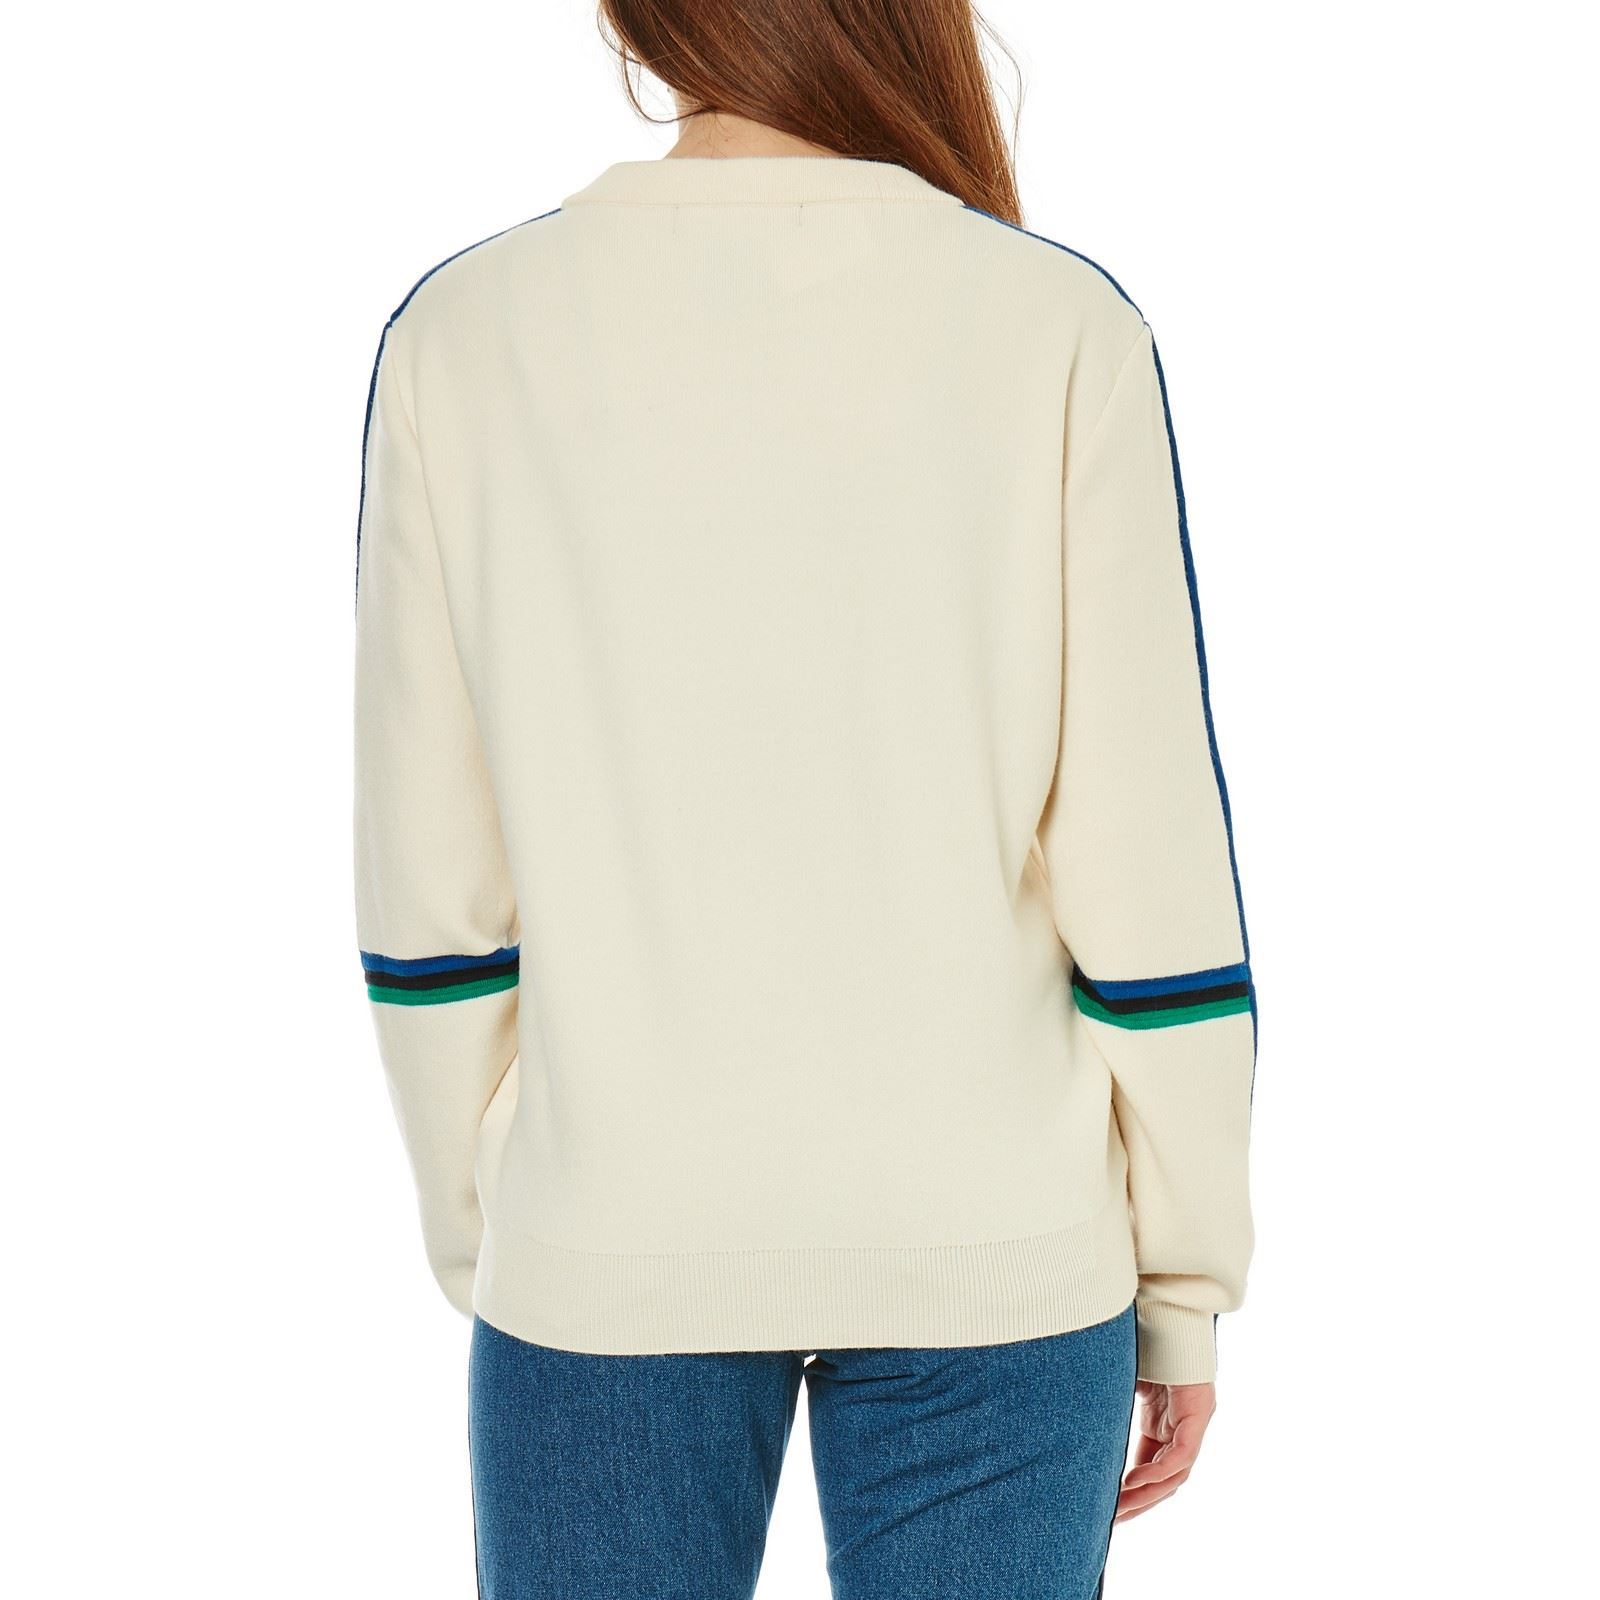 Vero Moda Ecru Sweat Brandalley Damara Shirt awgr0axqC